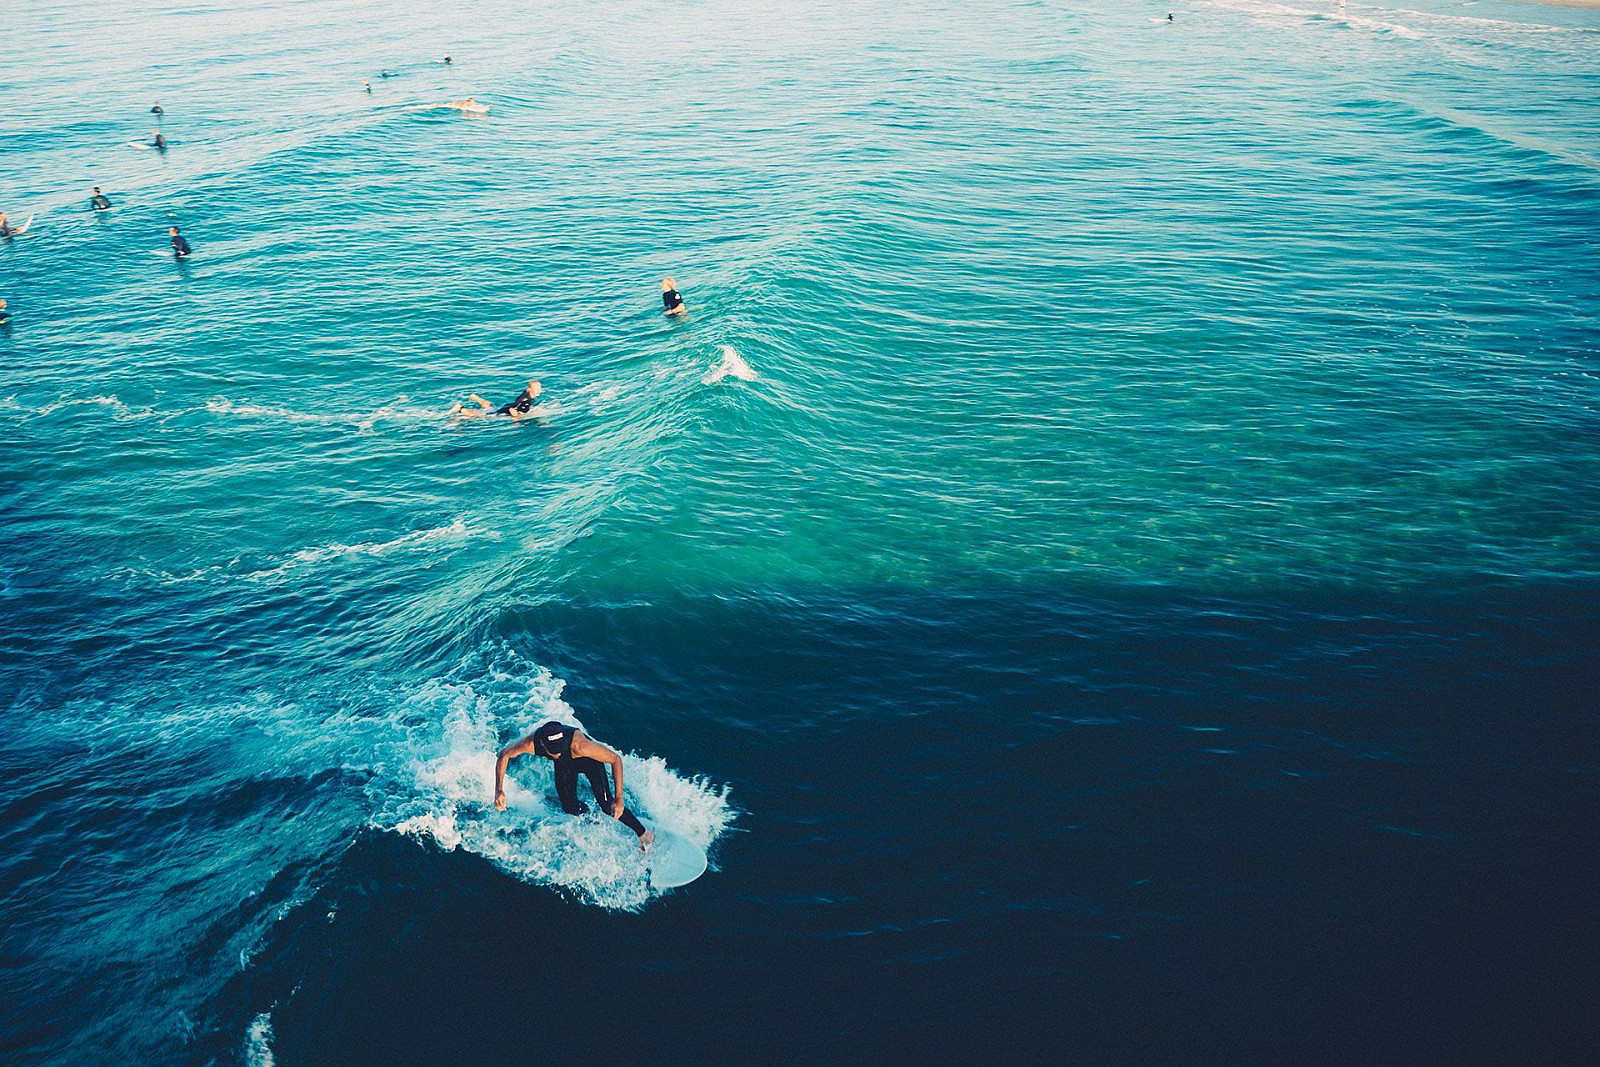 Surfing in summer